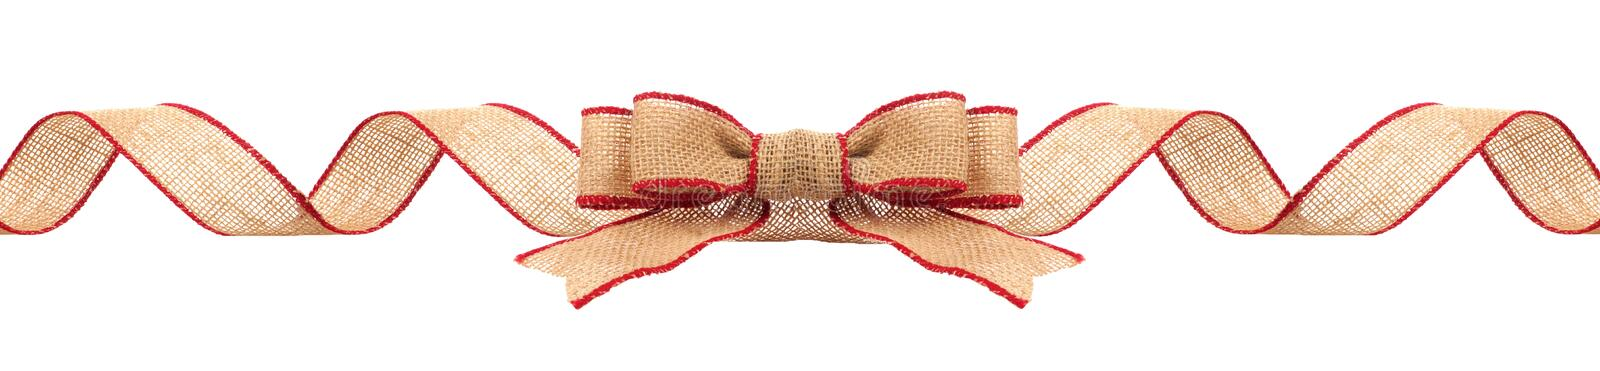 Christmas border with burlap ribbon with red trim isolated stock photo